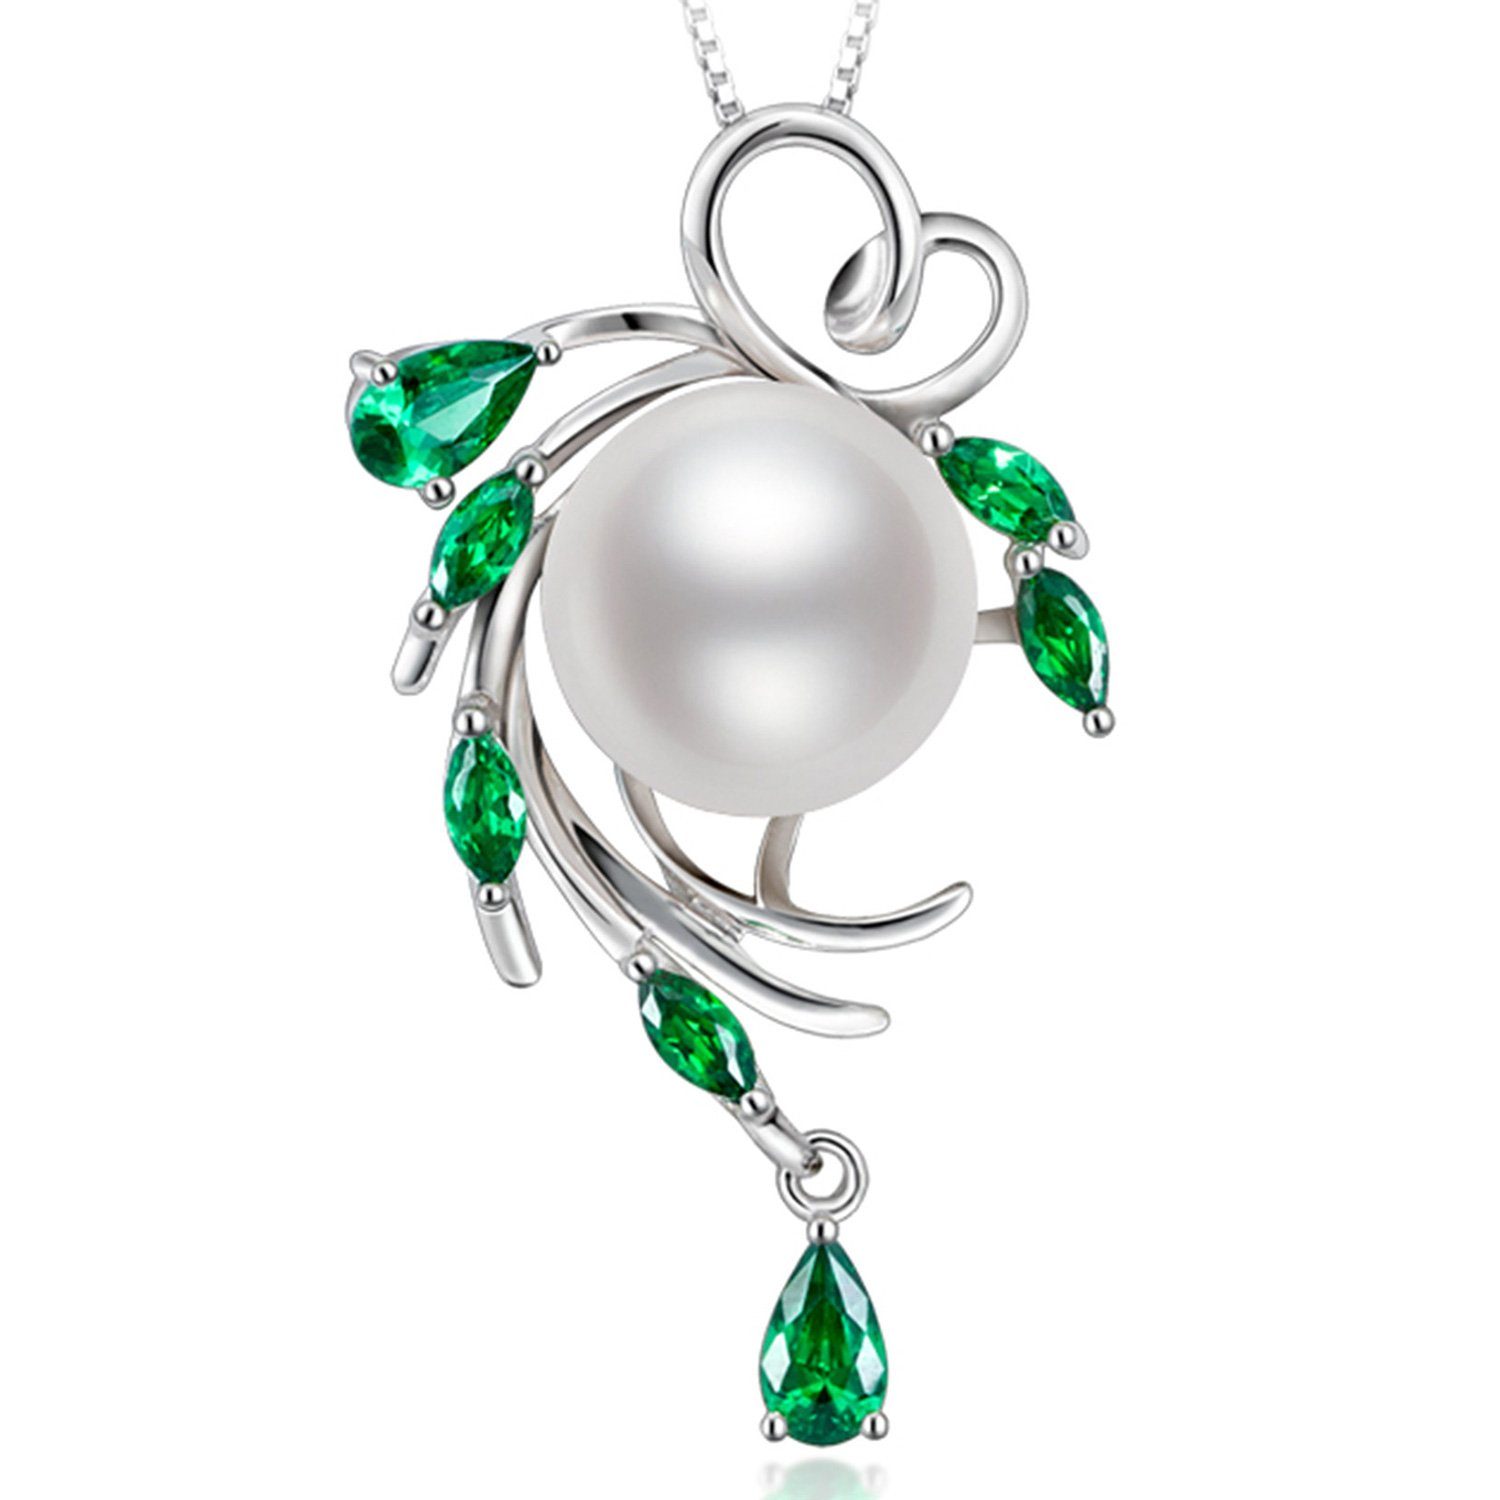 HXZZ Fine Jewelry Gifts for Women 925 Sterling Silver Freshwater Cultured White Pearl Pendant Necklace